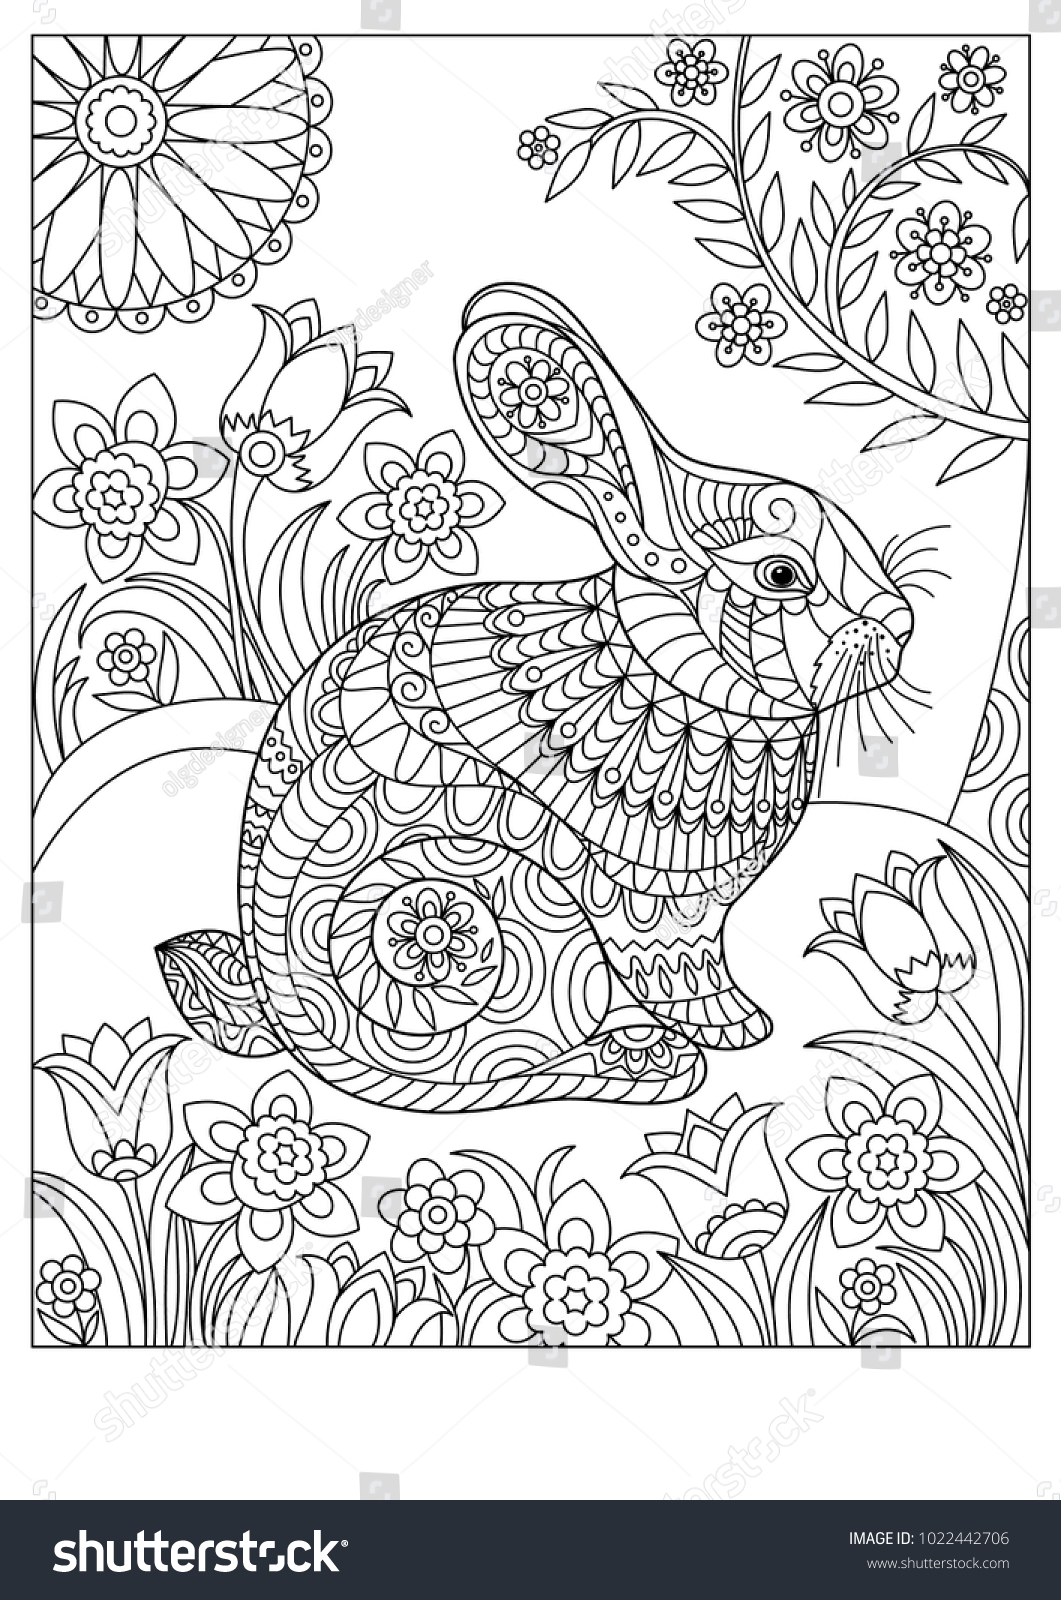 Spring Rabbit Coloring Page Adult Children Stock Vector (Royalty ...